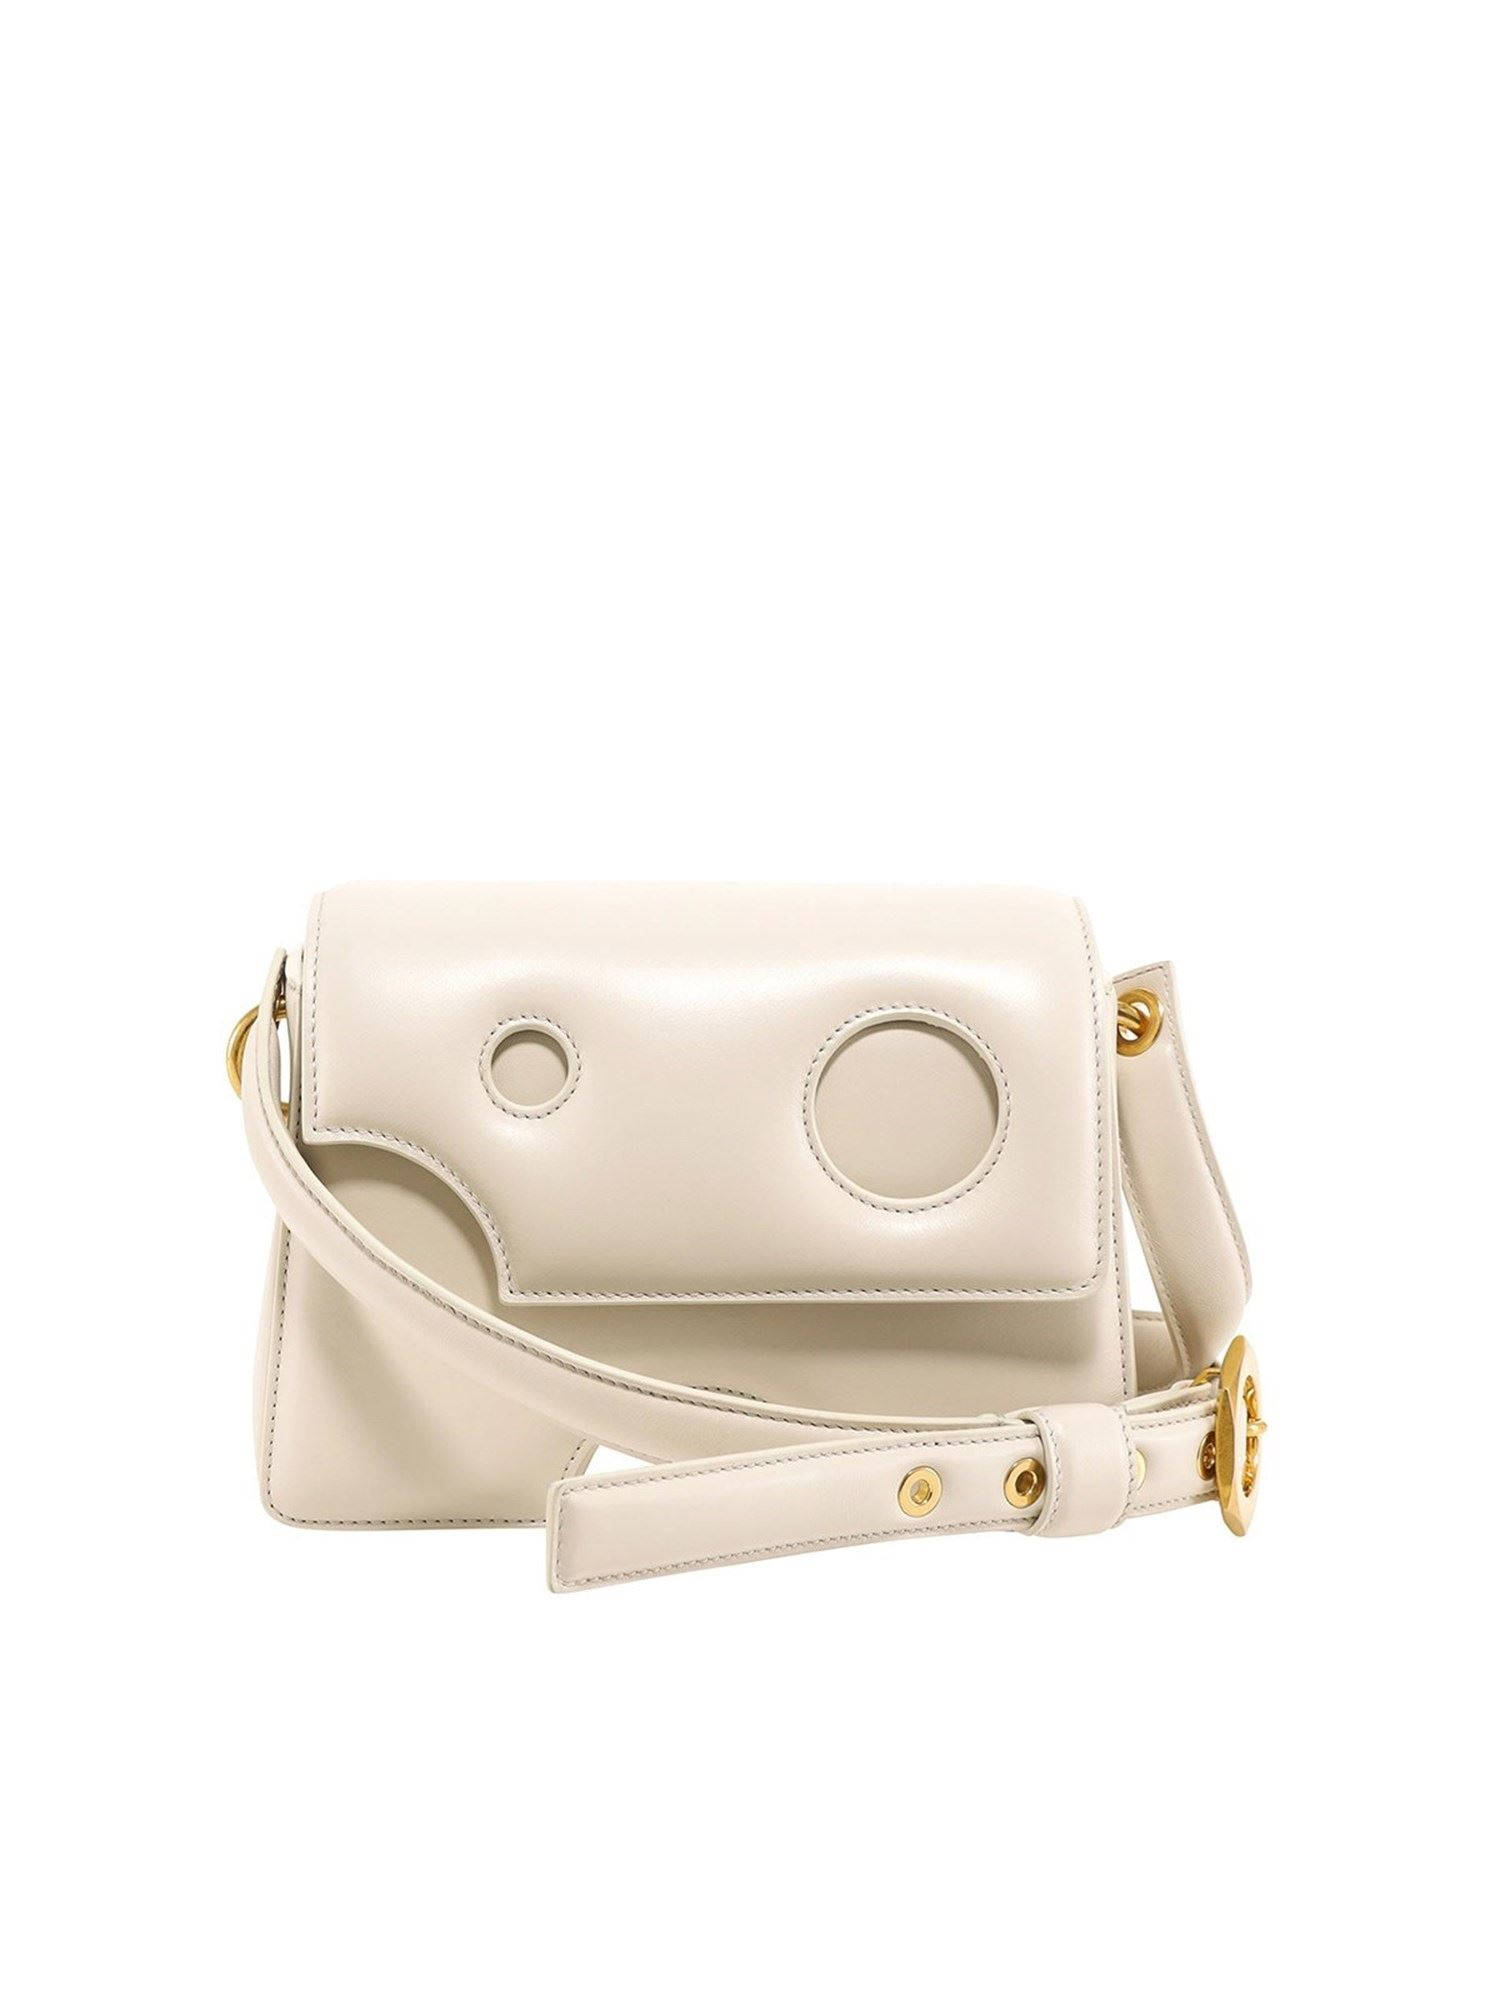 Off-White Leathers BURROW 22 BAG IN WHITE